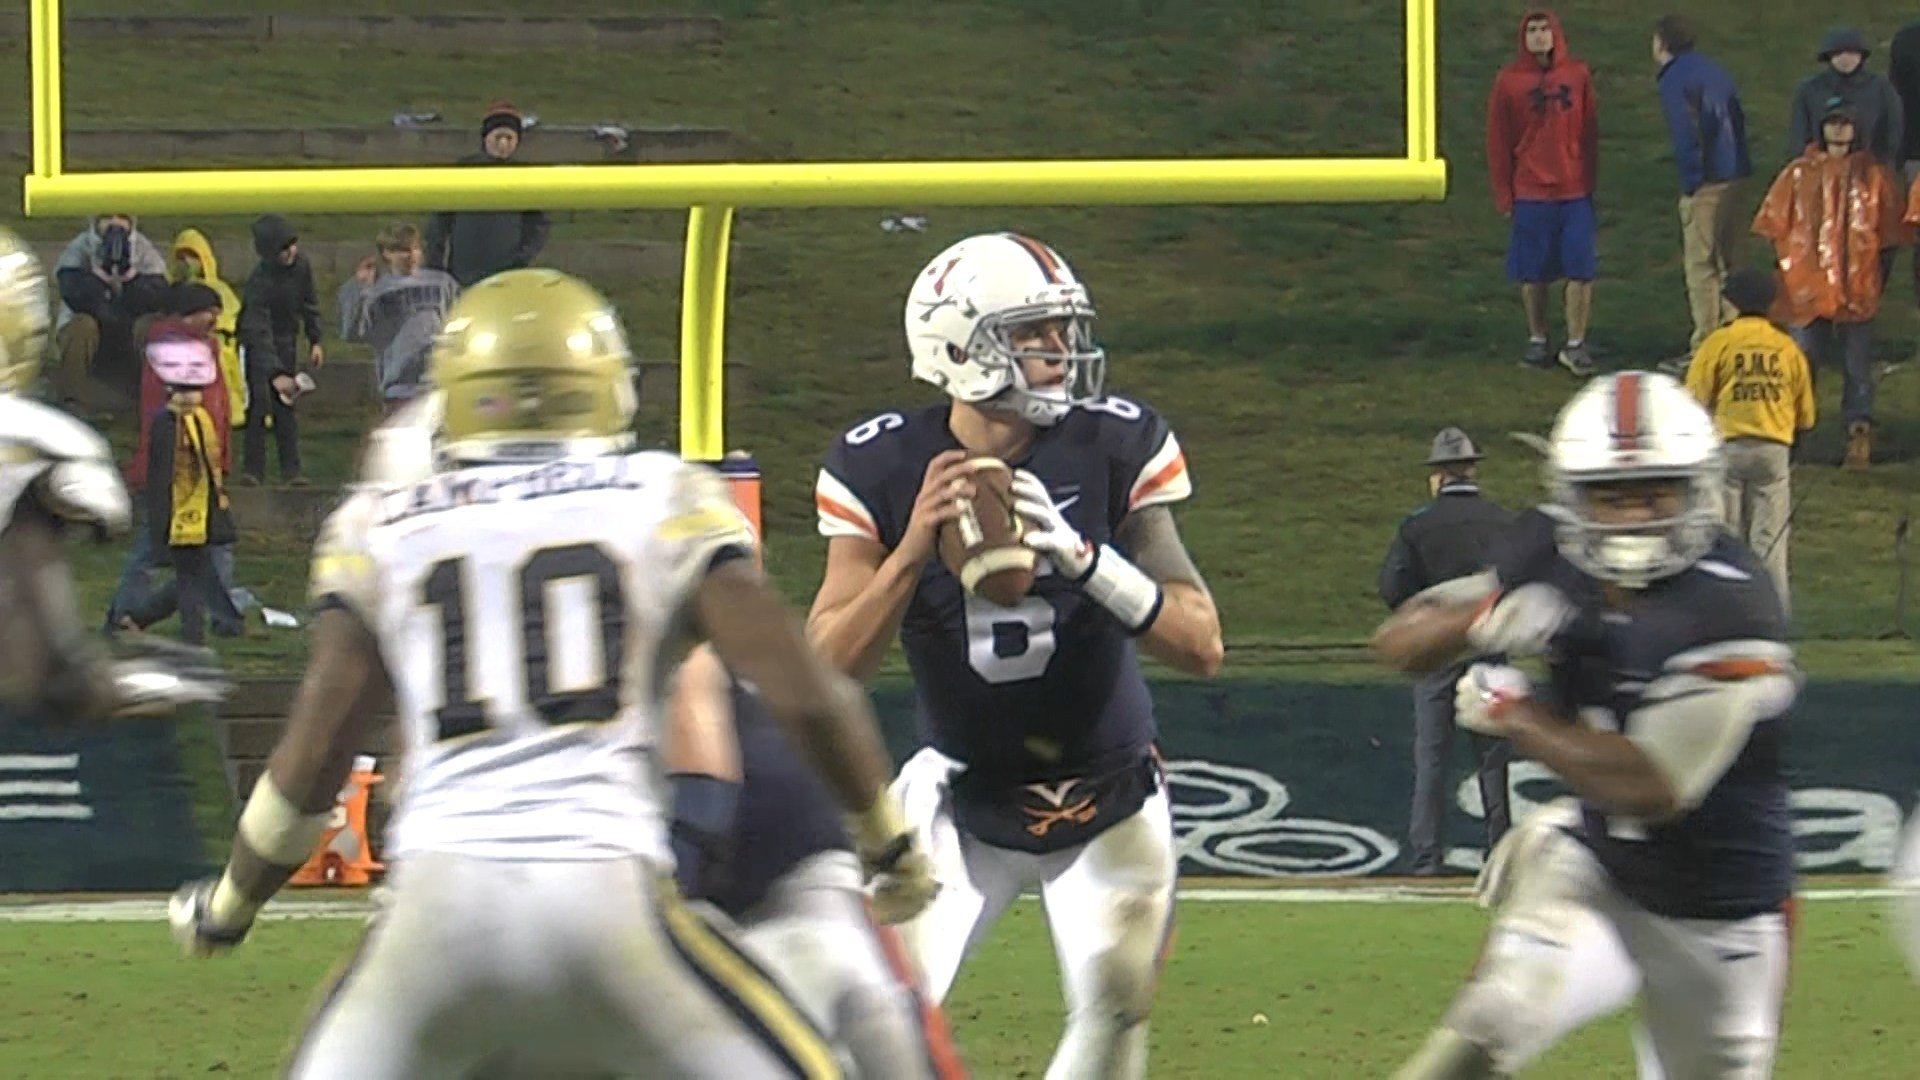 Kurt Benkert passed for 260 yards and three touchdowns in UVa's victory